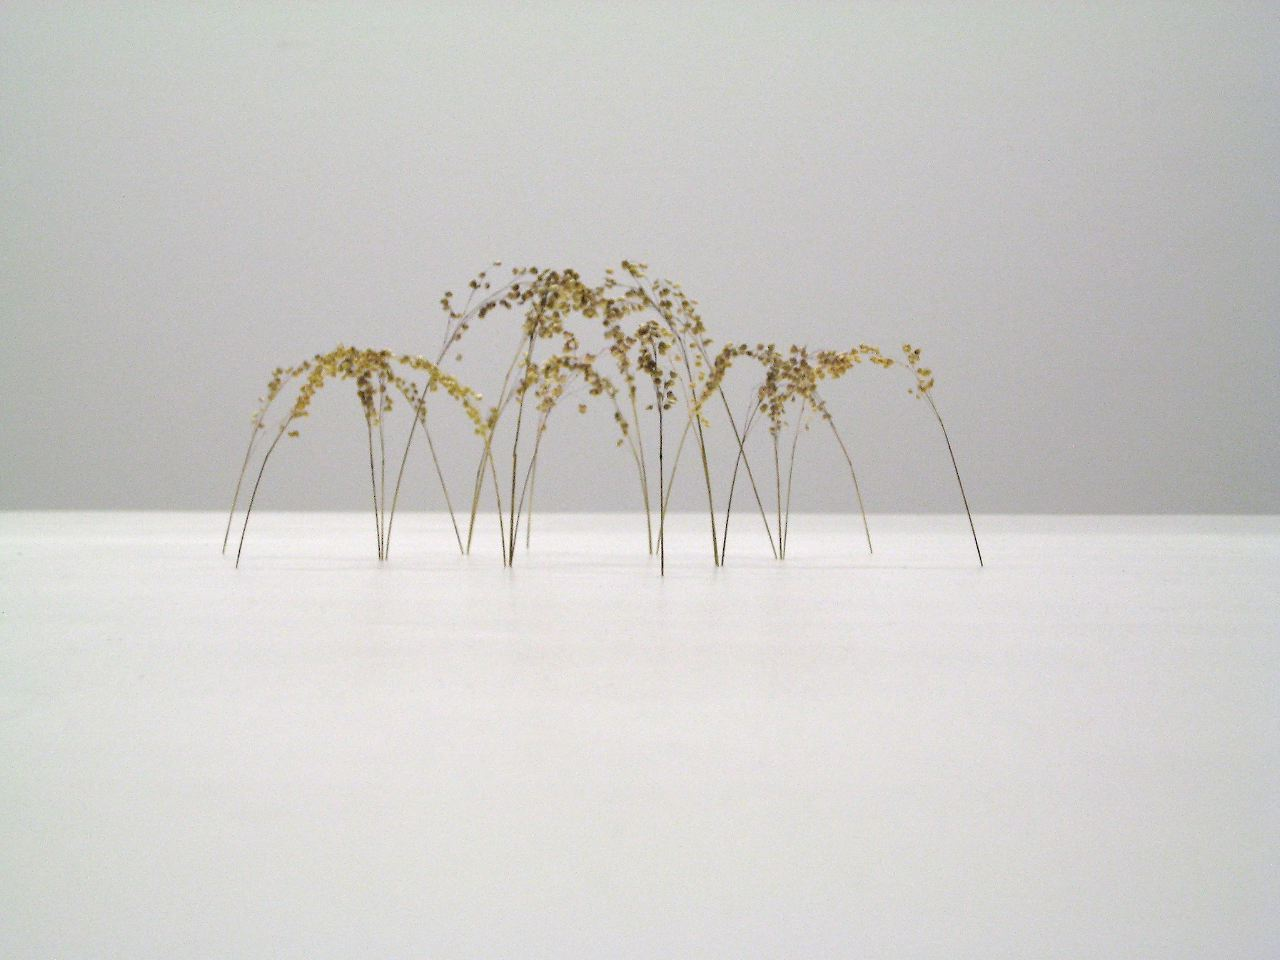 Christiane Löhr  (B. 1965)  Große Bogenform / Big Arch Form , 2011 Plant stalks 5 1/2 x 15 3/4 x 15 3/4 inches (14 x 40 x 40 cm)